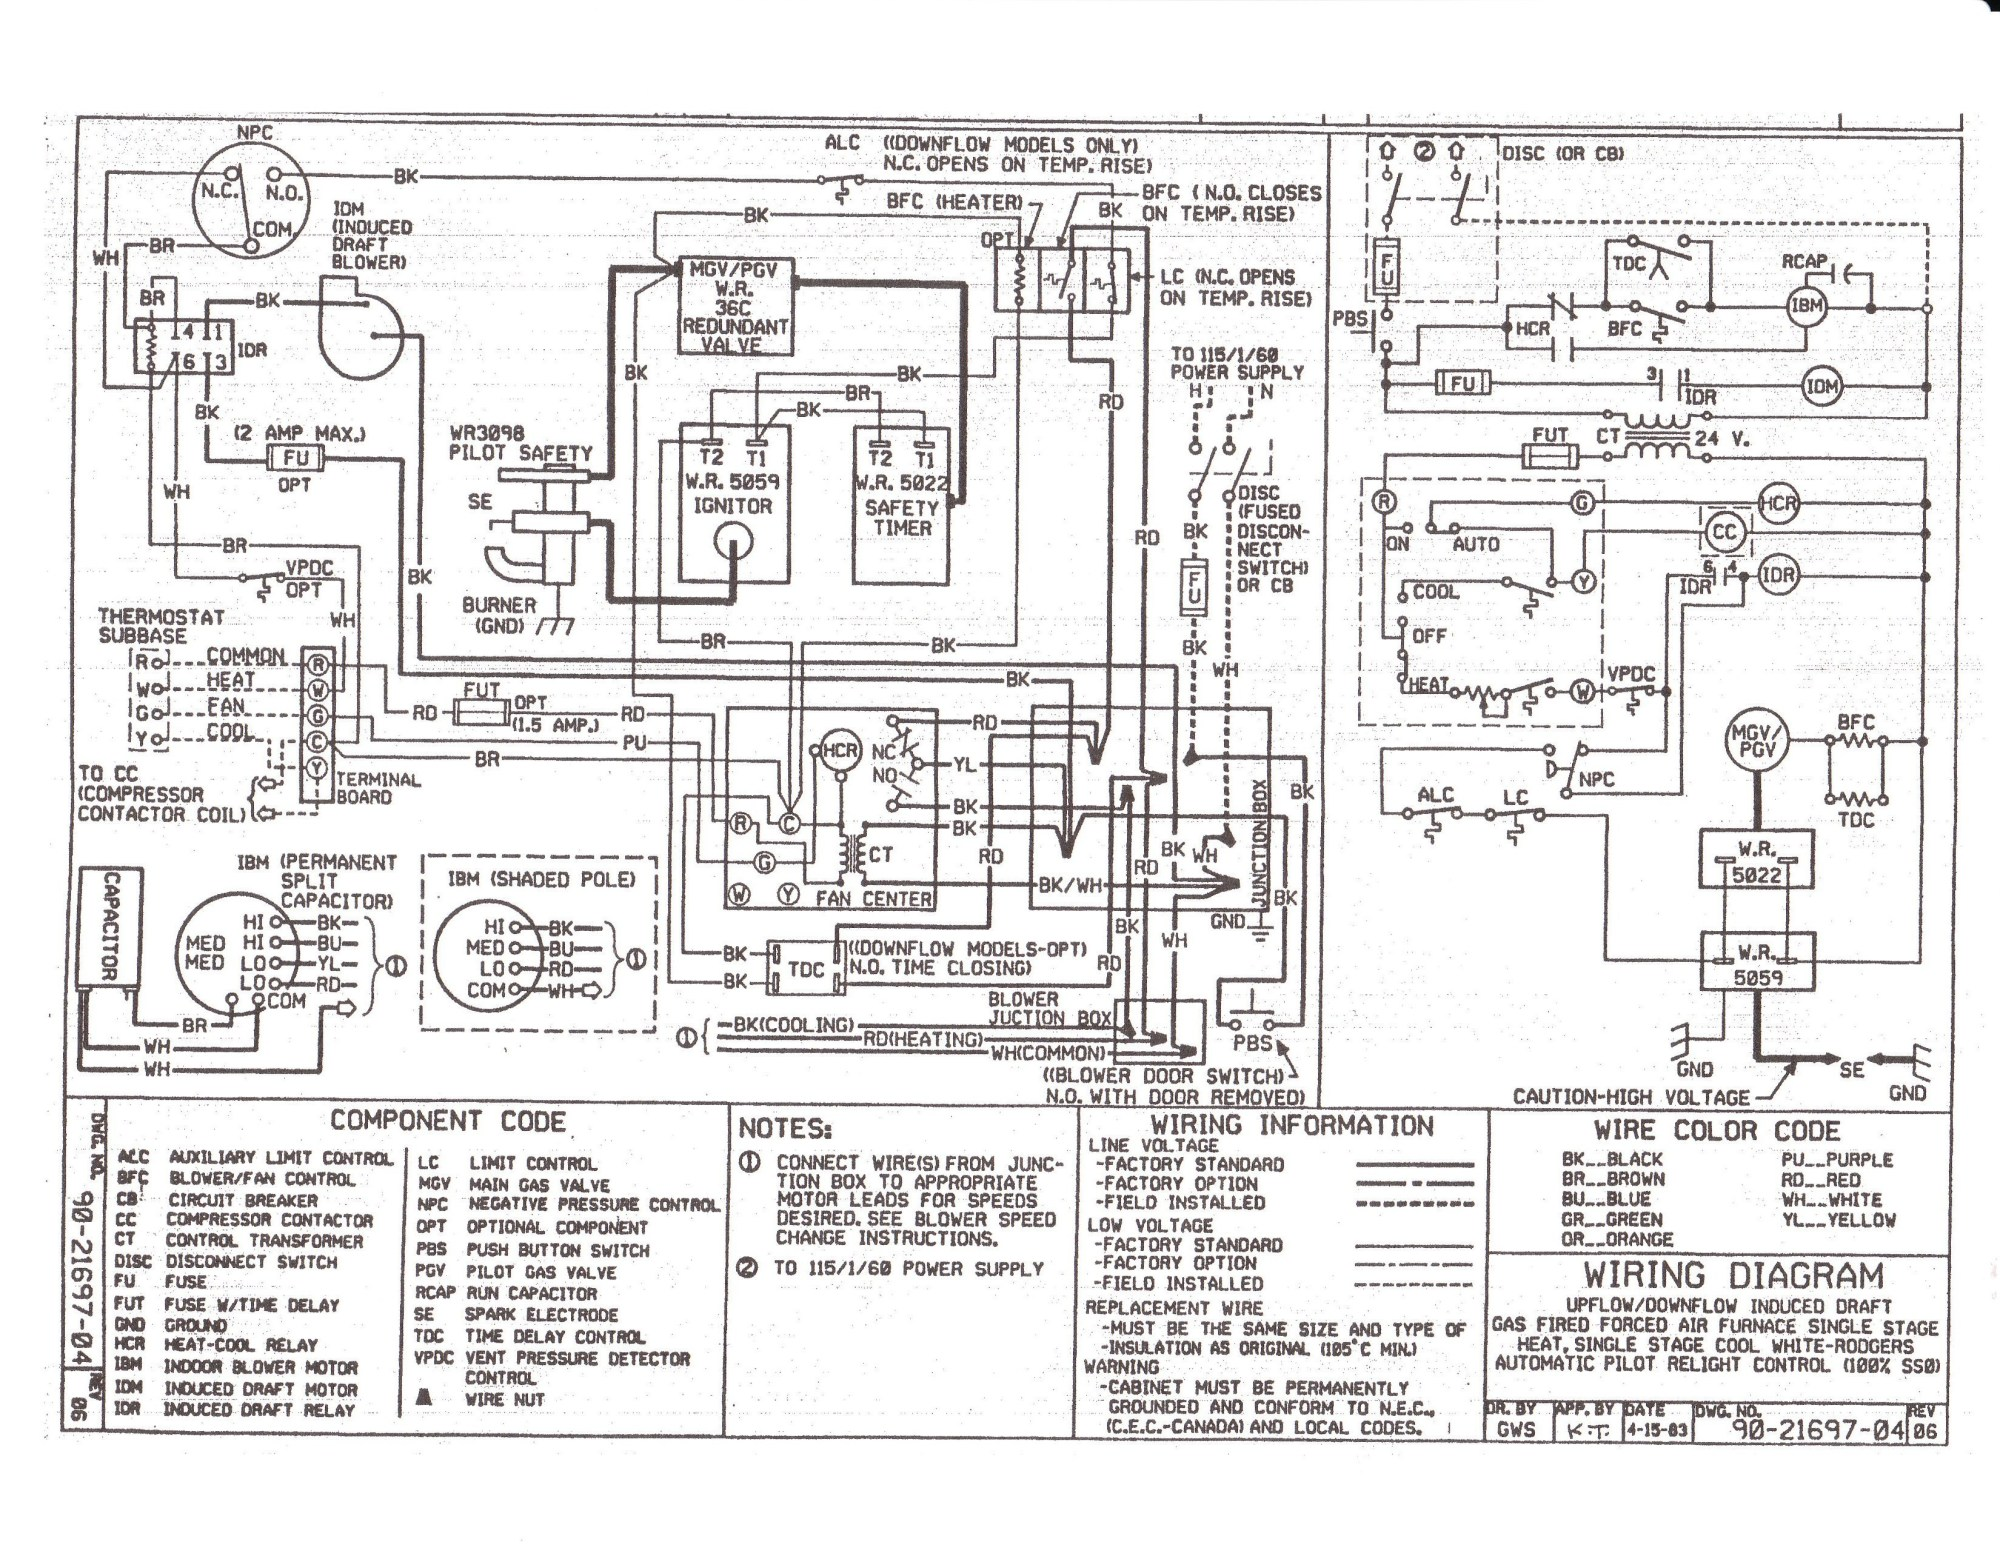 hight resolution of ge gas furnace wiring today wiring diagram old gas heater wiring schematic detoxicrecenze com wp content